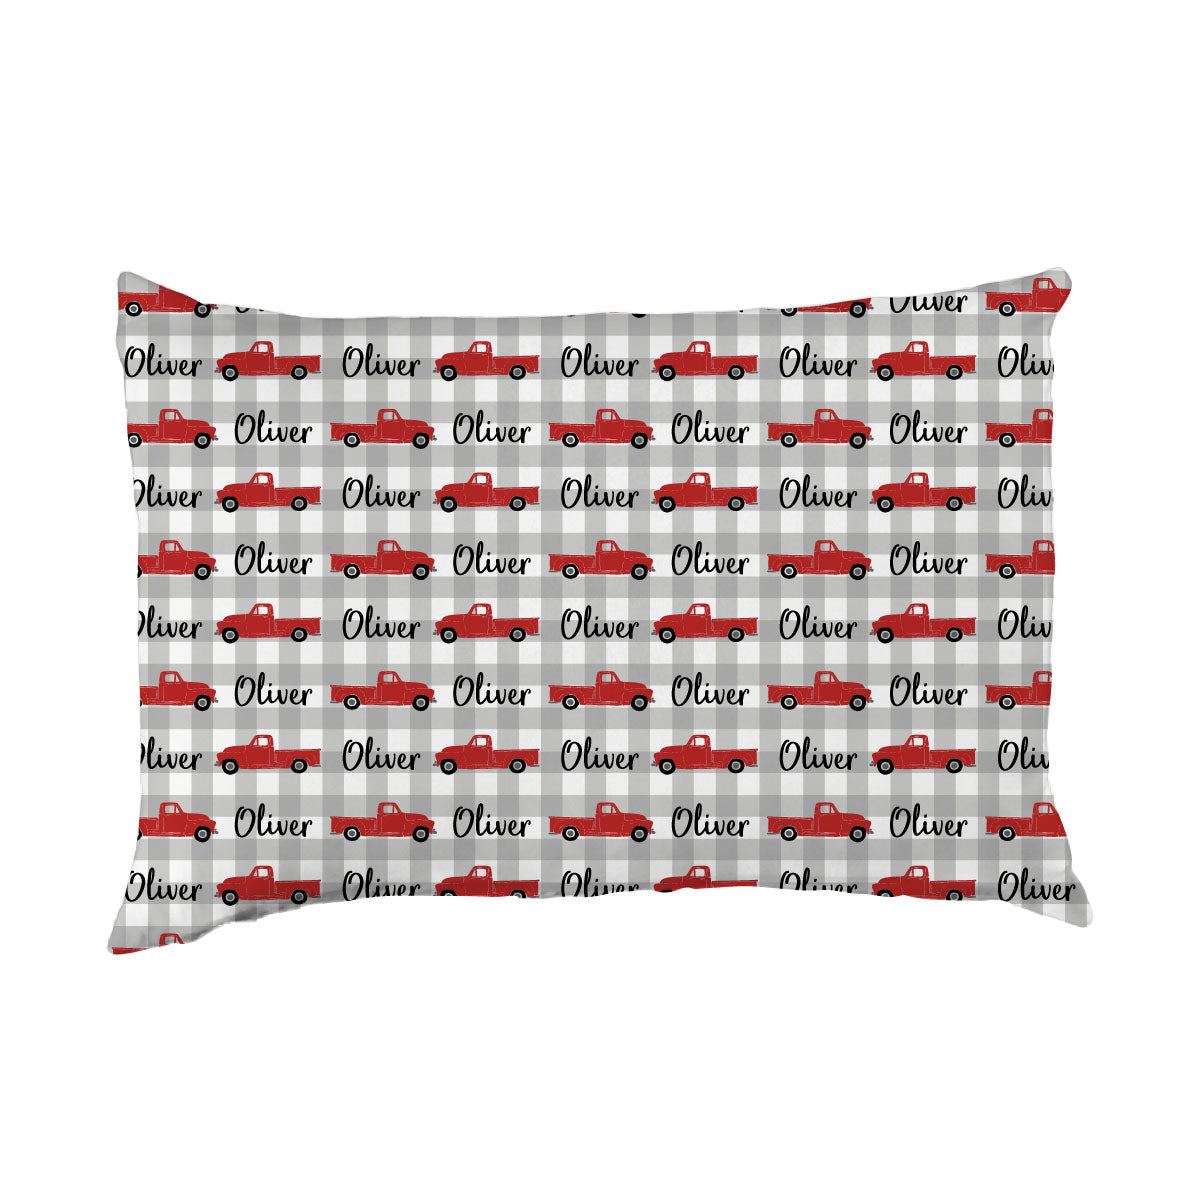 Oliver's Vintage Truck | Big Kid Pillow Case